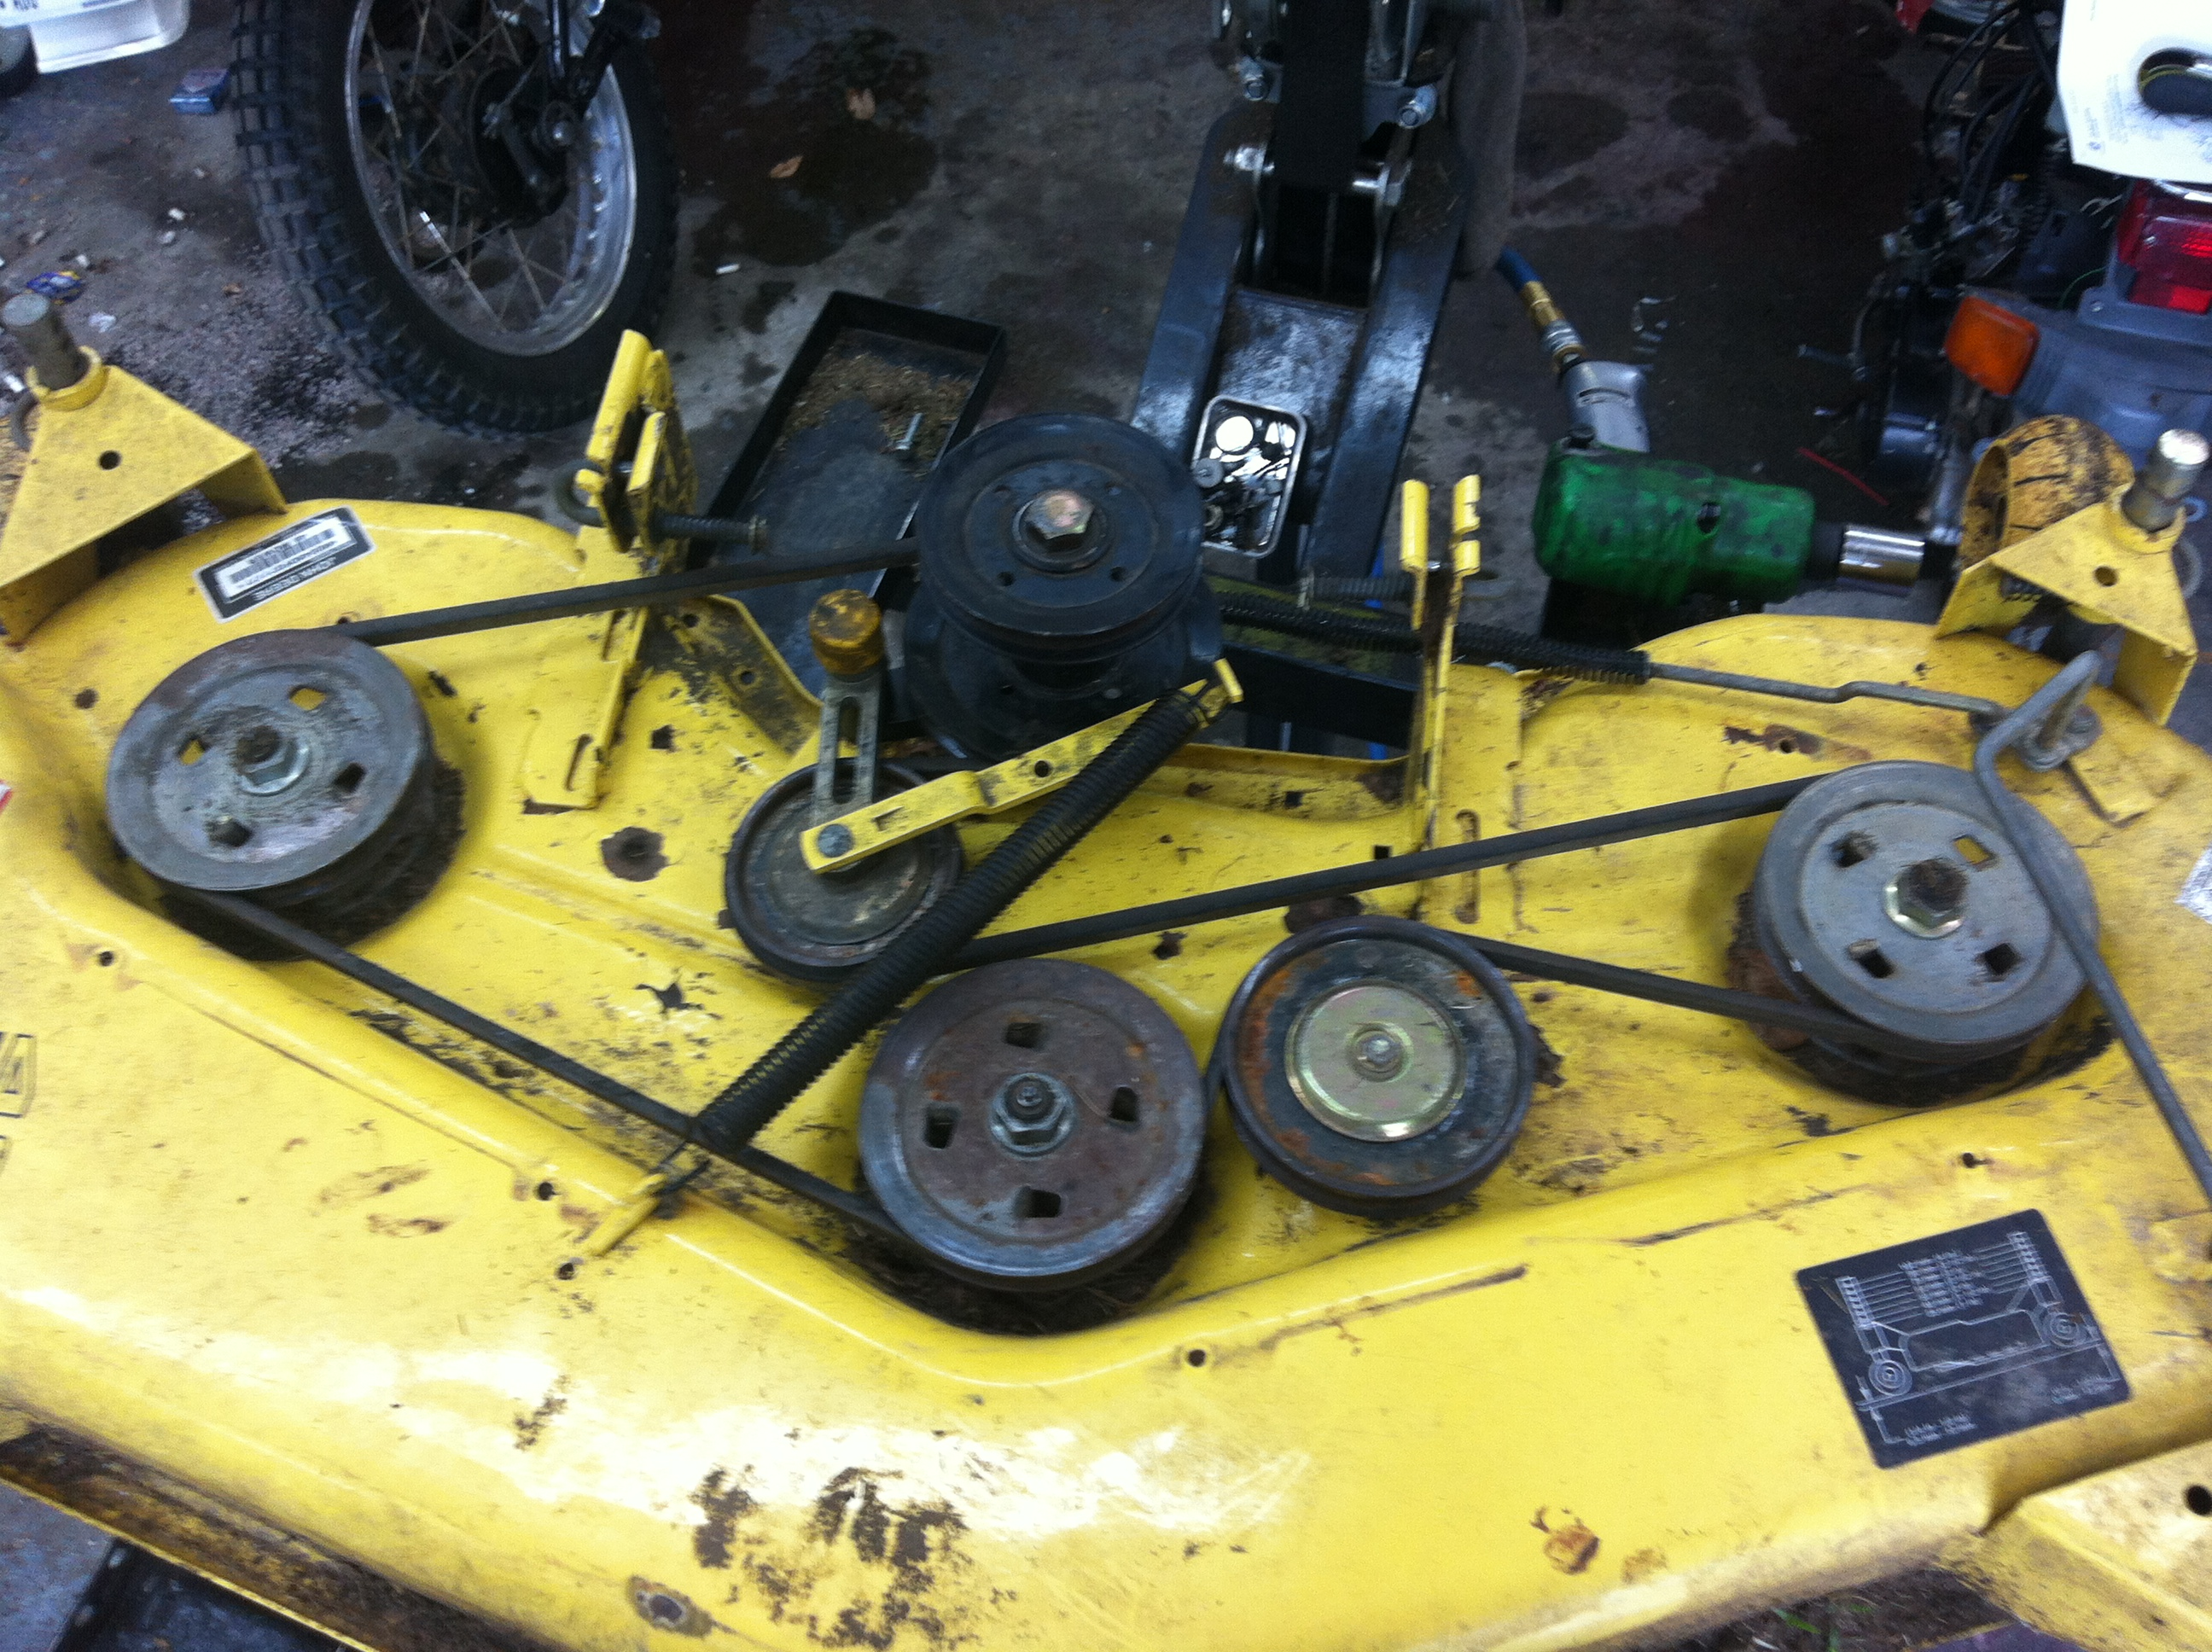 John Deere Lawn Mower Blade For G100 Series With 54 Deck Wiring Diagram Car Lift Further Warning Light Tractors D100 Us